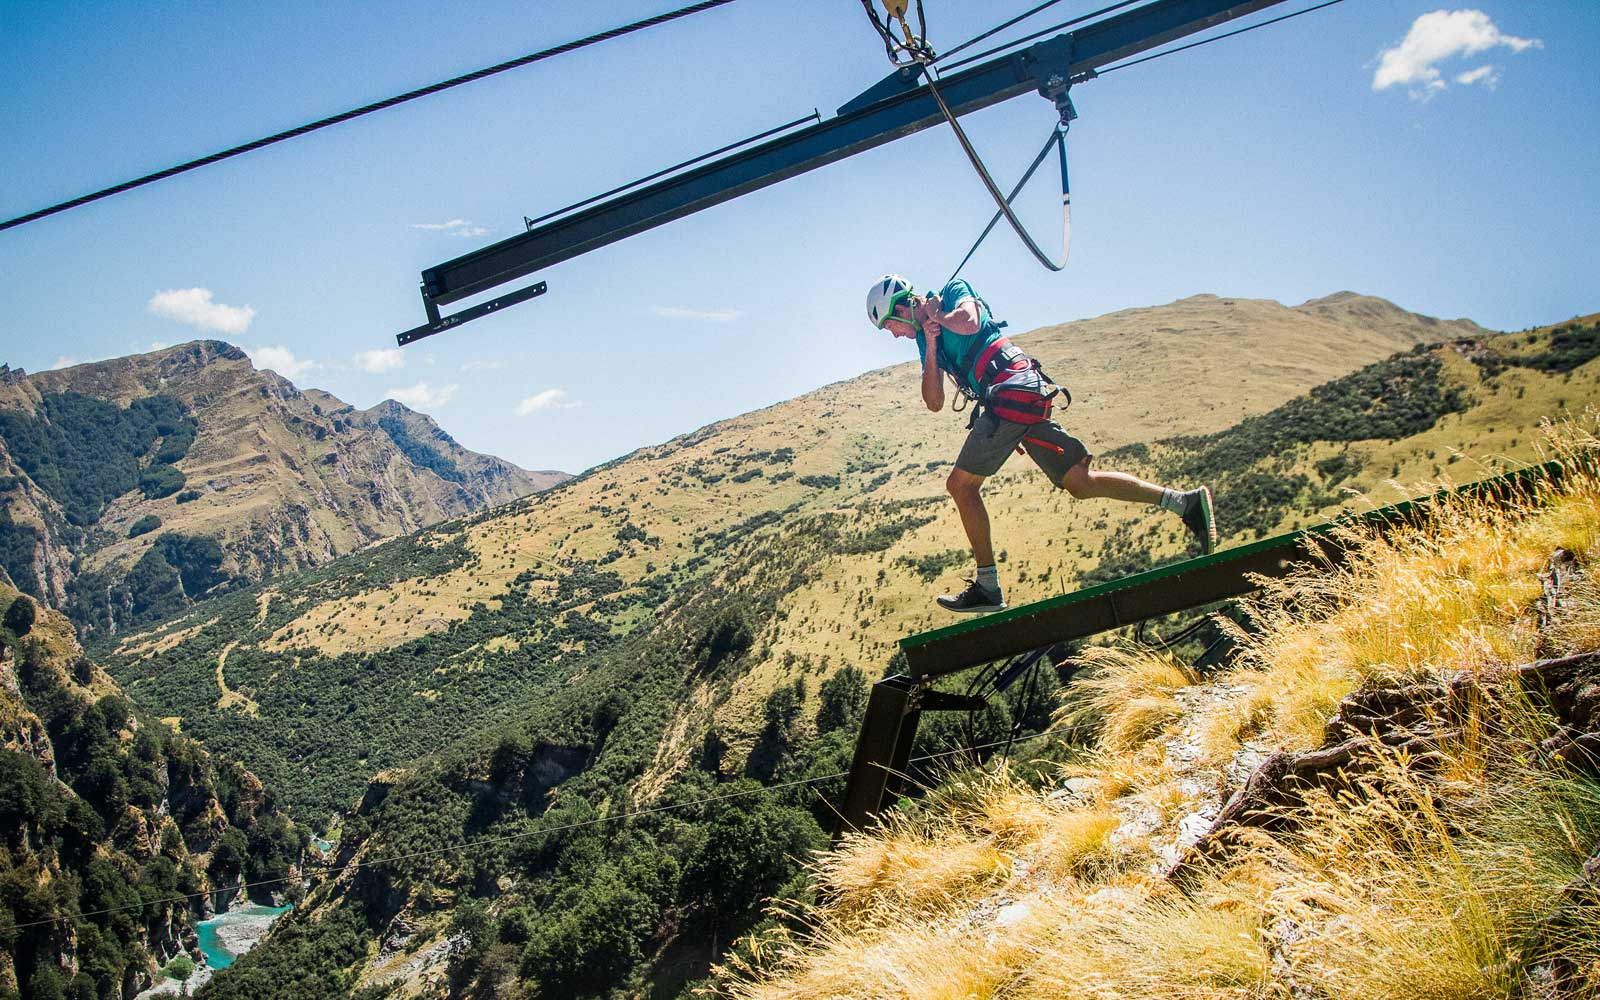 You Can Slingshot Yourself Off A Cliff In New Zealand